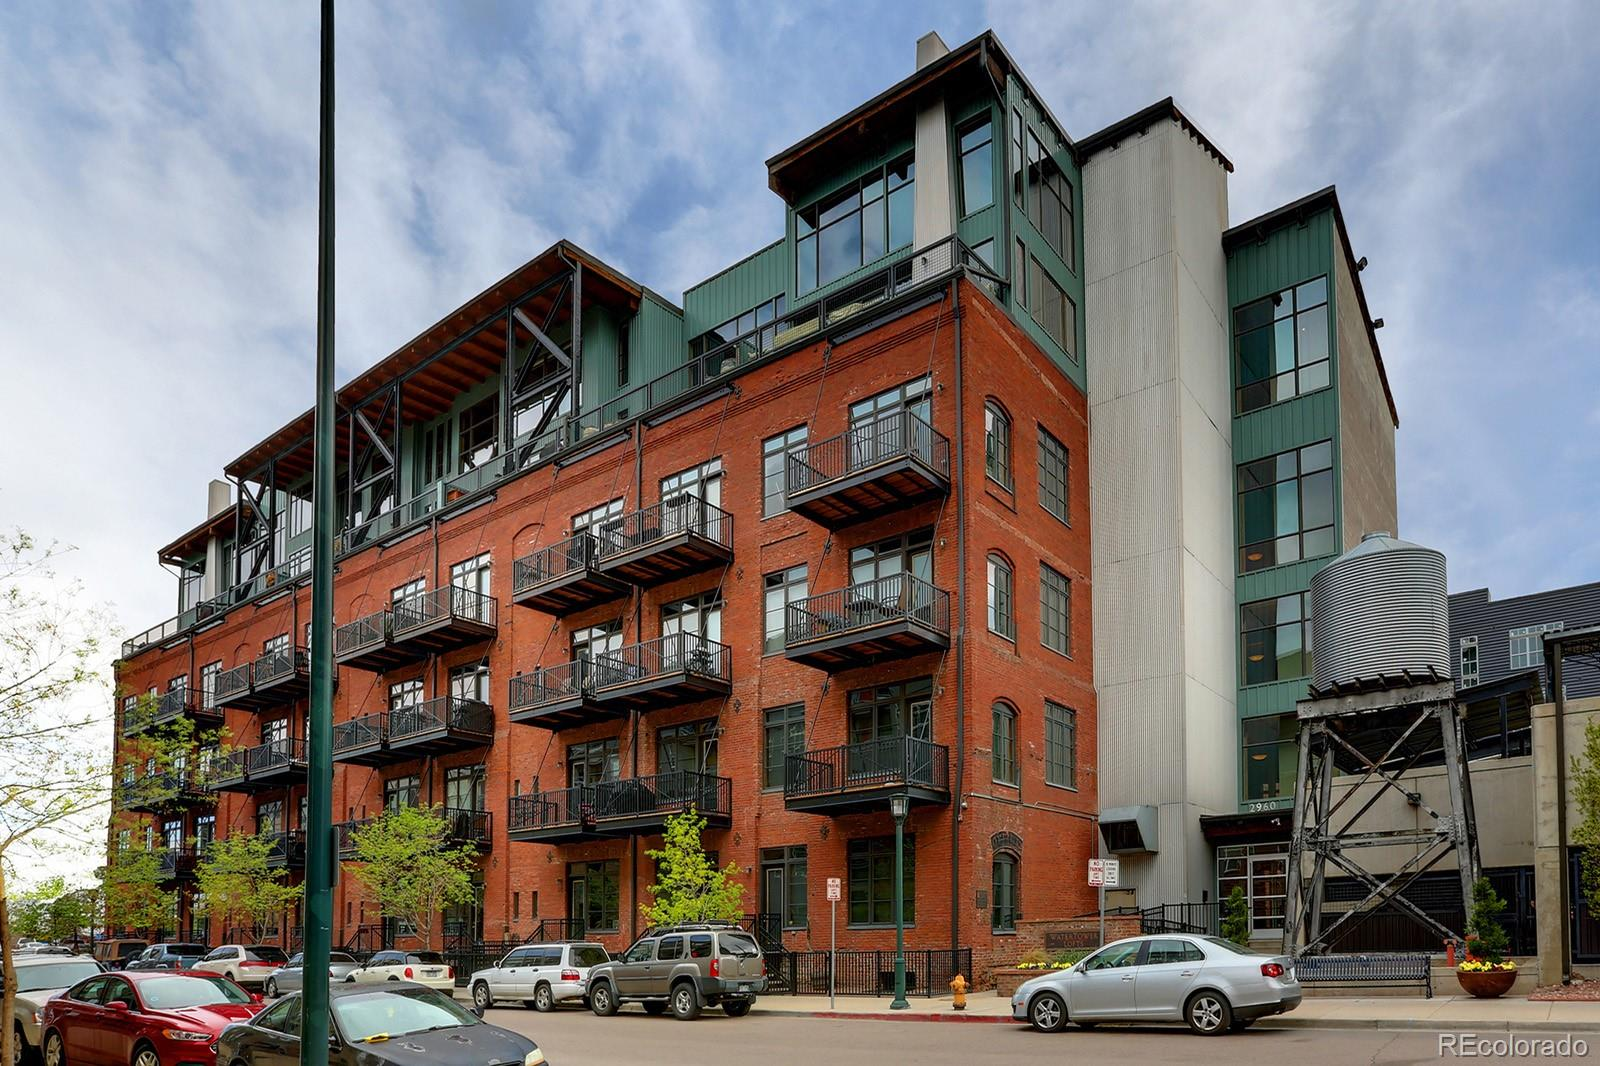 Gorgeous 2 bedroom 2.5 bathroom loft in the historic Watertower Lofts. Located in one of Denver's most desirable neighborhoods—walk to Coors Field, restaurants, grocery stores, light rail, Union Station and so much more. Upon entry, one is welcomed by soaring 13' high ceilings, exposed red brick, impressive timber beams, and hardwood floors. The open floor plan interlaces the entirety of the living space for optimal functionality and flexibility. The gourmet kitchen with its granite island provides the perfect setting for entertaining family and friends. Main floor bedroom features a full bath (his and her sinks) and a stackable washer and dryer. Large walk-in closet with a custom Elfa closet system. The bedroom can easily accommodate a king size bed and/or be converted into a living area. Lower level features a large living area with full bath (his and her sinks and another large walk-in closet). It can easily be converted into a master suite. Amenities include a fitness center with up to date equipment. Includes one parking space and storage locker. Walk out your back door to your own fenced courtyard. Great for BBQ and entertaining. Easy access to I-25 & I-70 and Confluence Park, Cherry Creek walking and bike path.